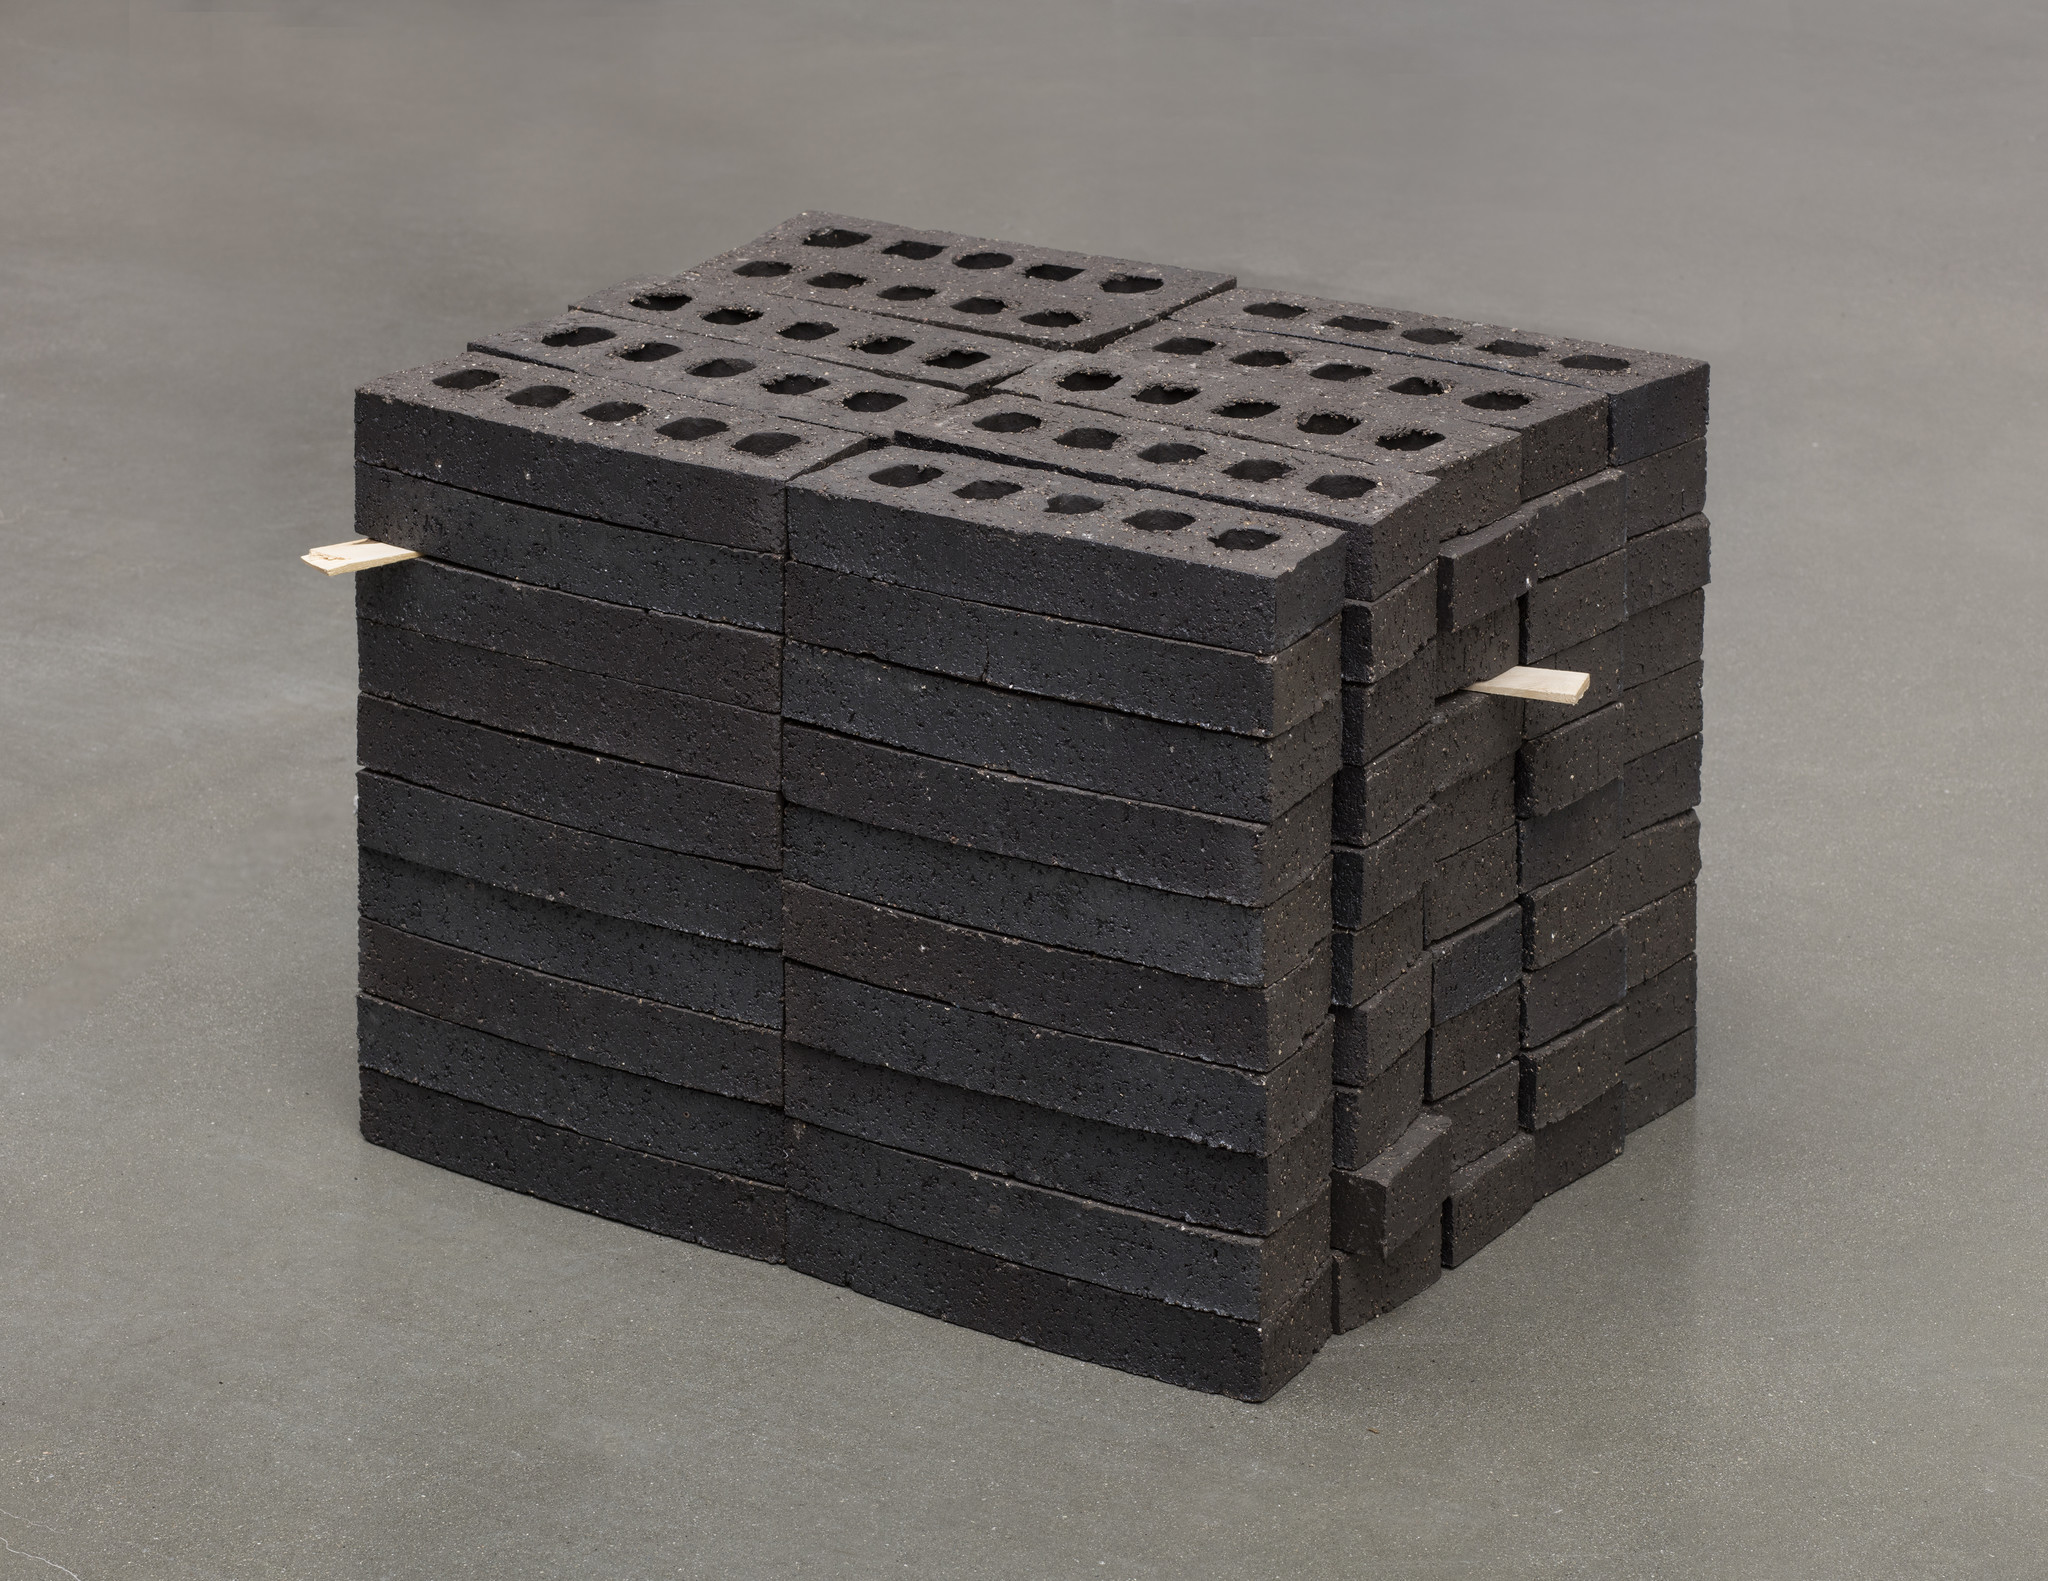 """Theaster Gates' """"Study for Pavillion,"""" 2017, bricks 16 1/2 inches by 24 1/4 inches by 21 1/4 inches."""